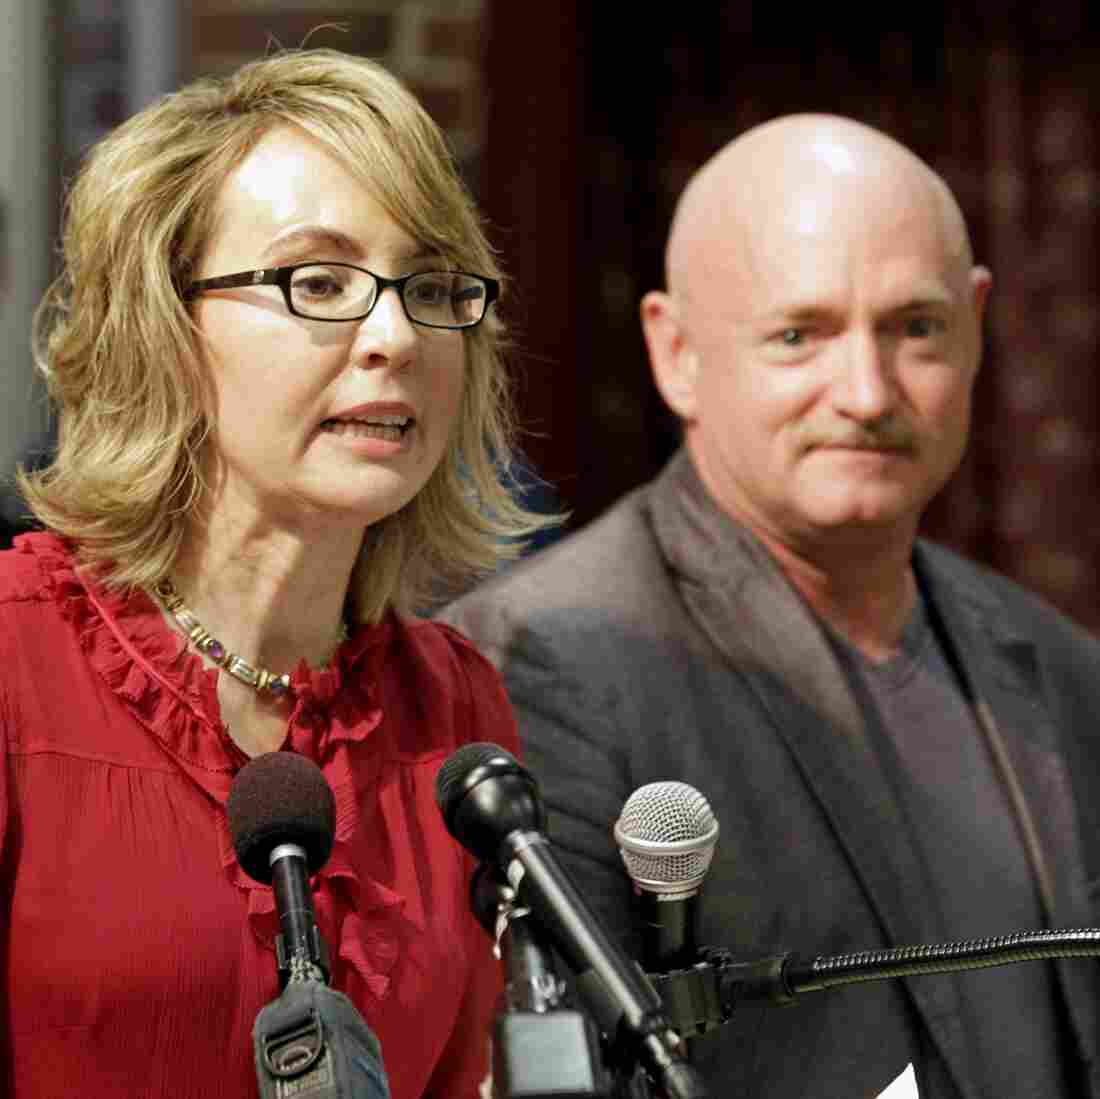 Book News: Gabrielle Giffords Writing Book About Gun Control